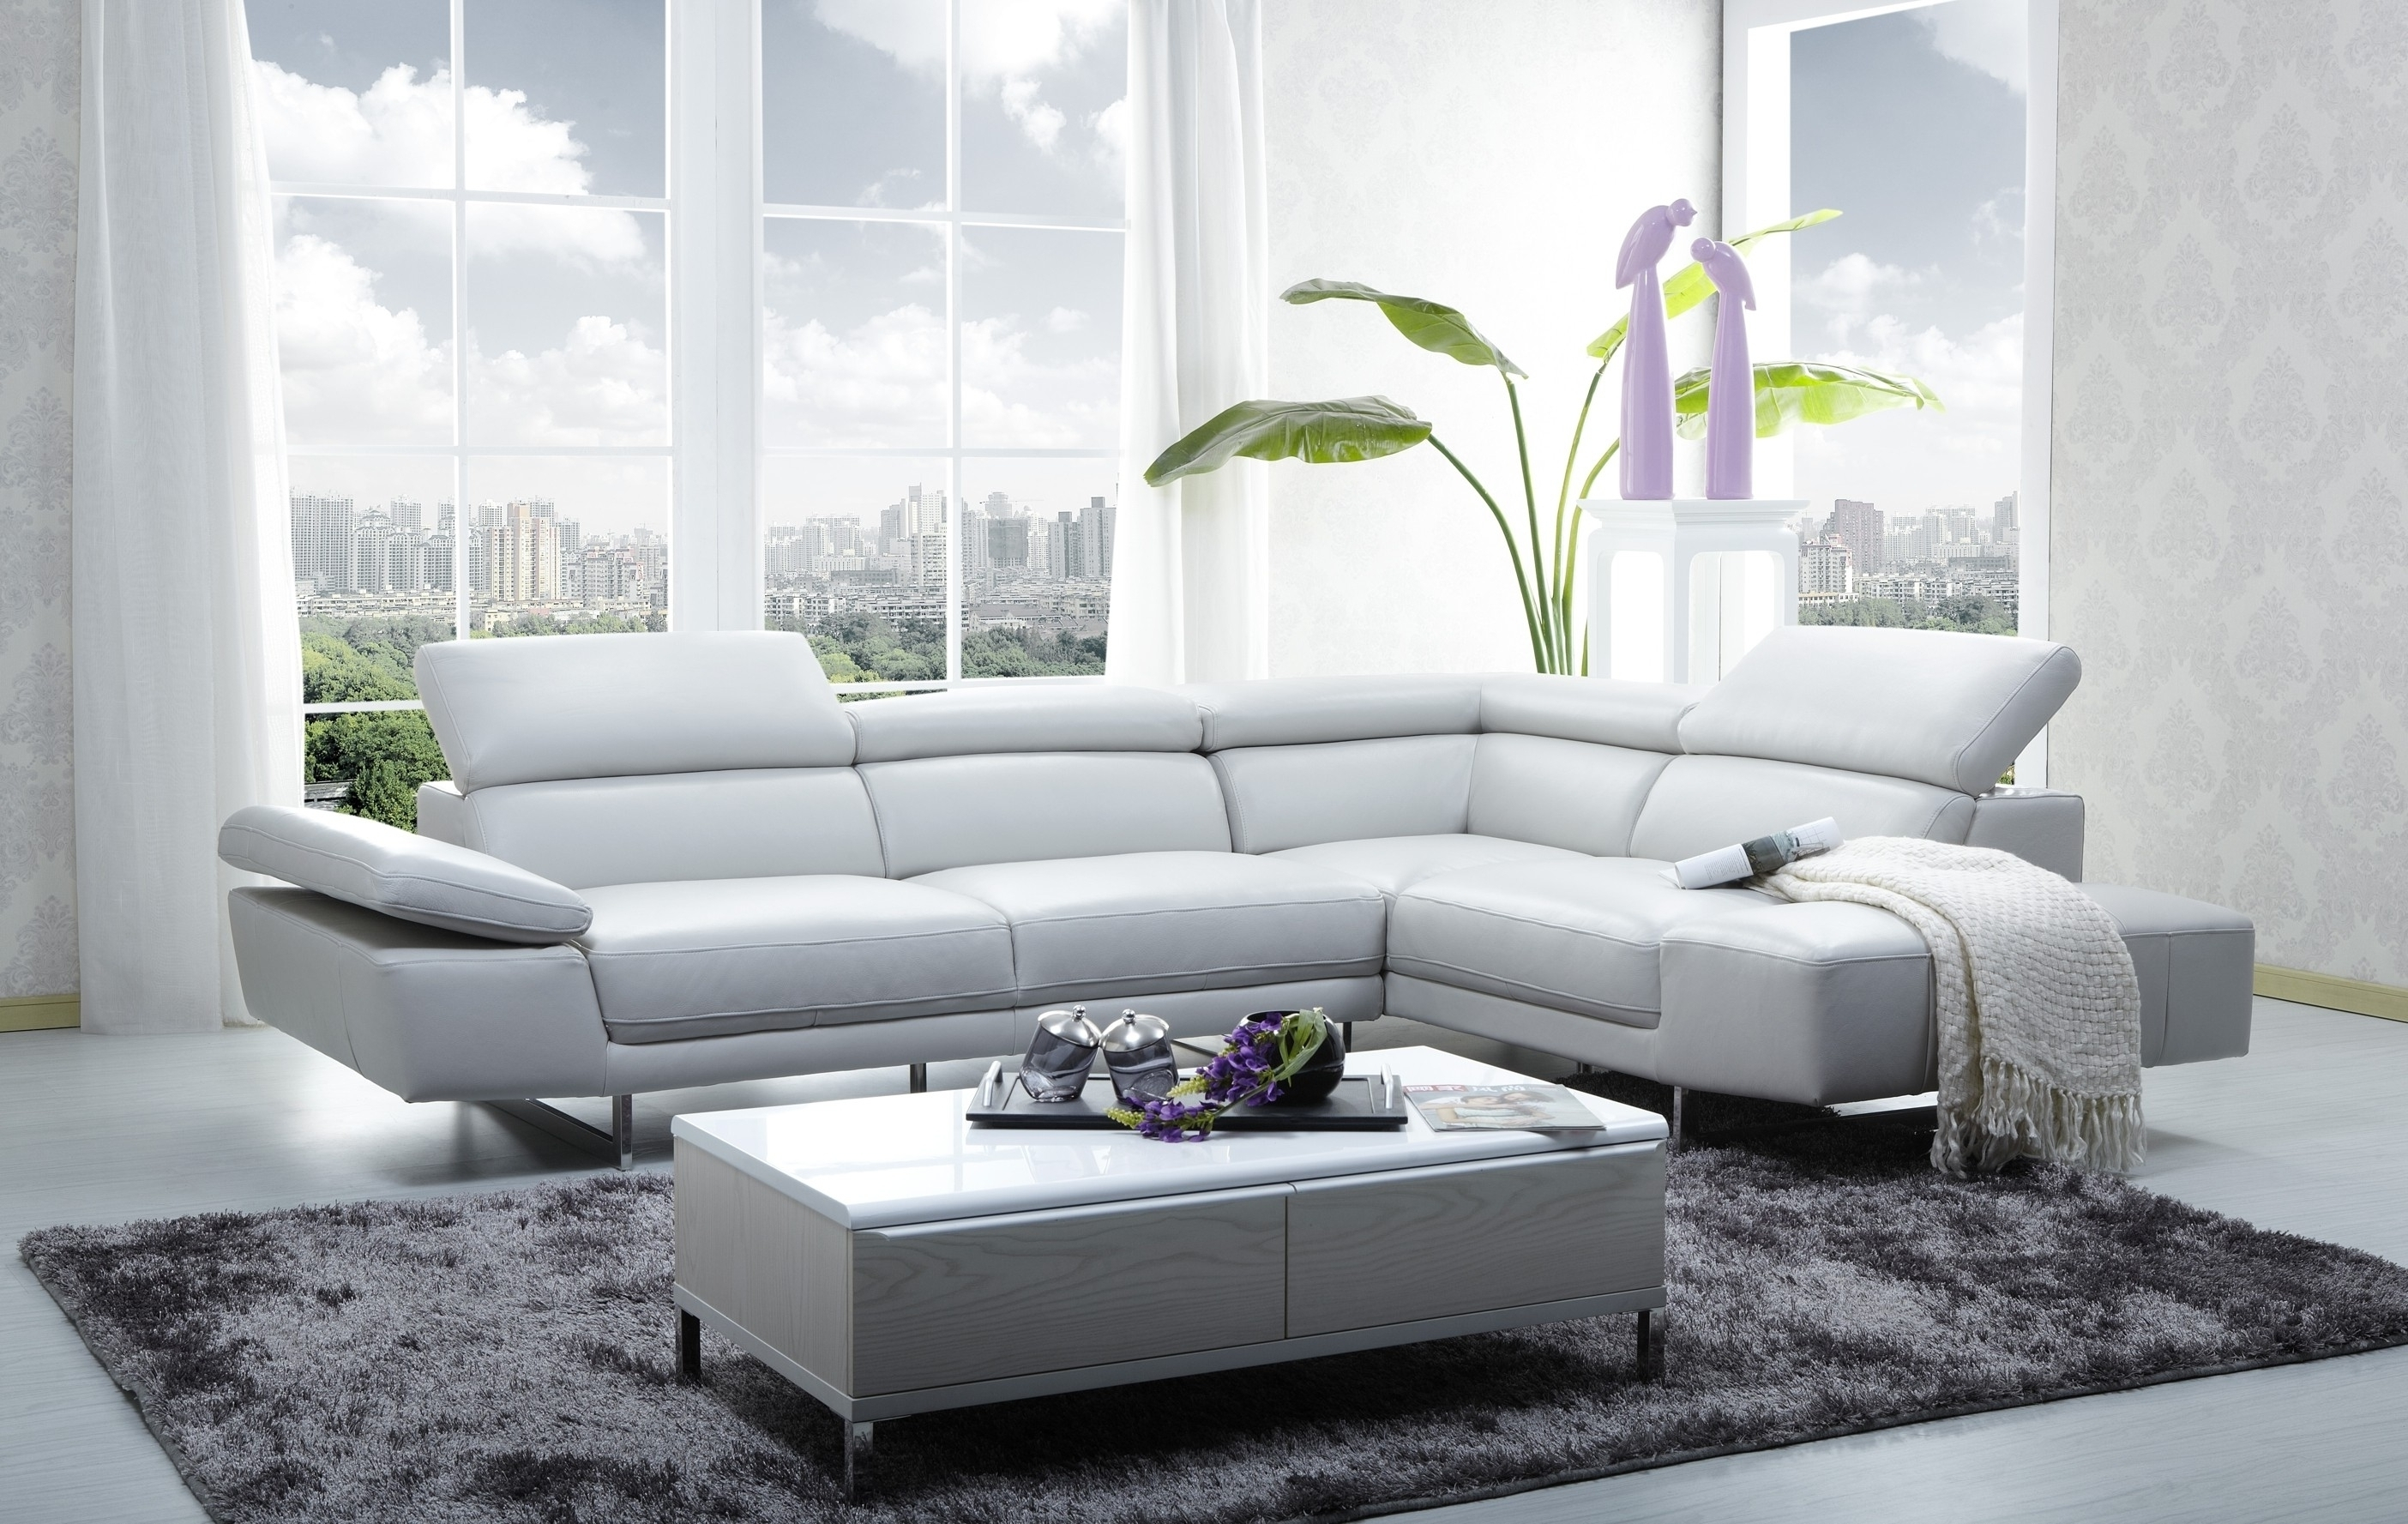 Living Room : Modular Sofas For Small Spaces Sectional Sofa For For Recent Small Modular Sectional Sofas (View 3 of 15)